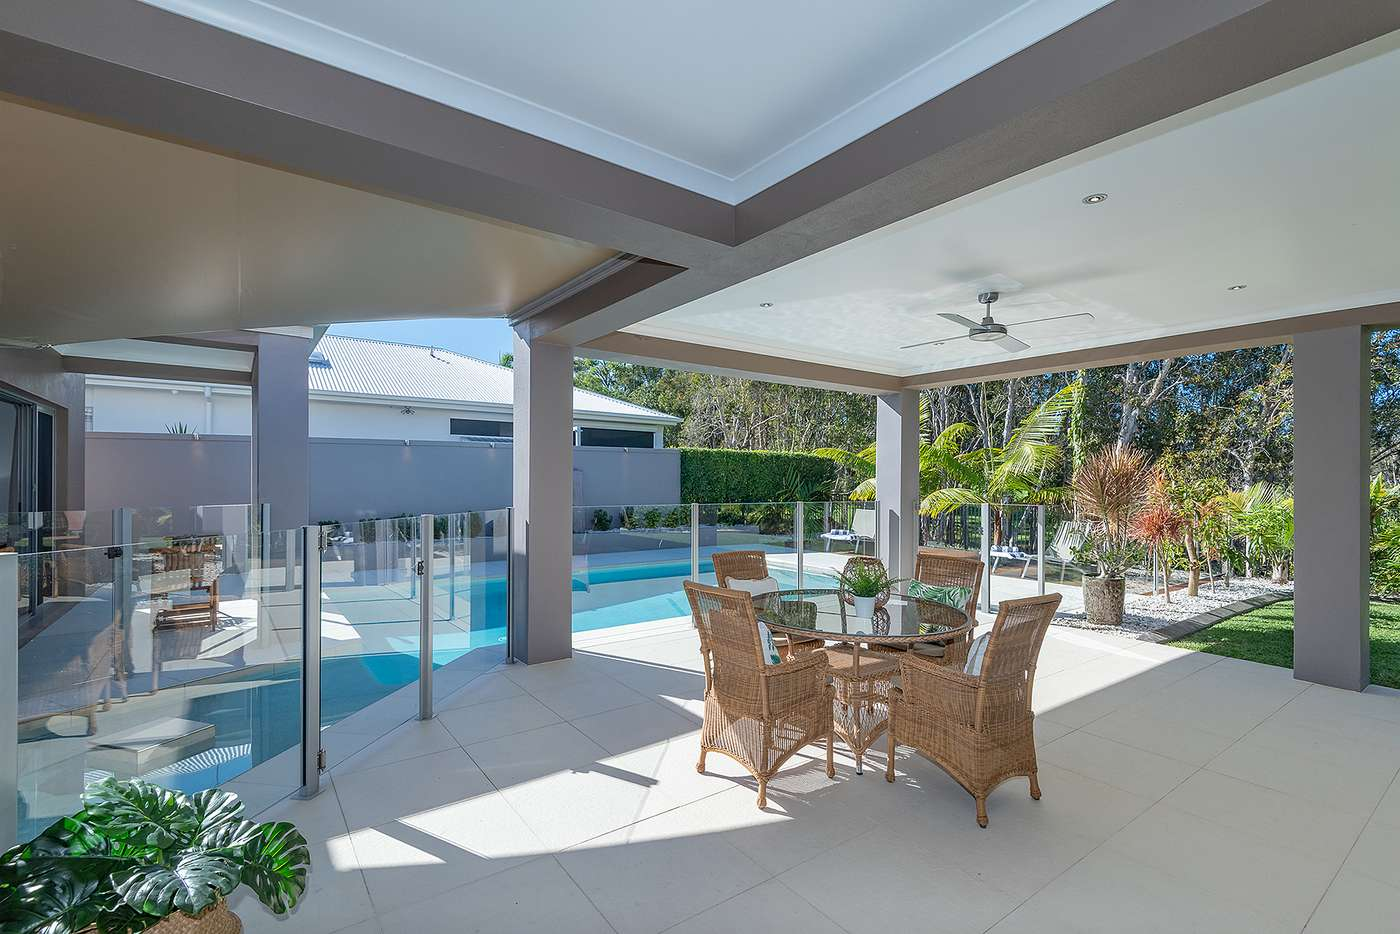 Main view of Homely house listing, 27 Hetherington Dr, Twin Waters QLD 4564